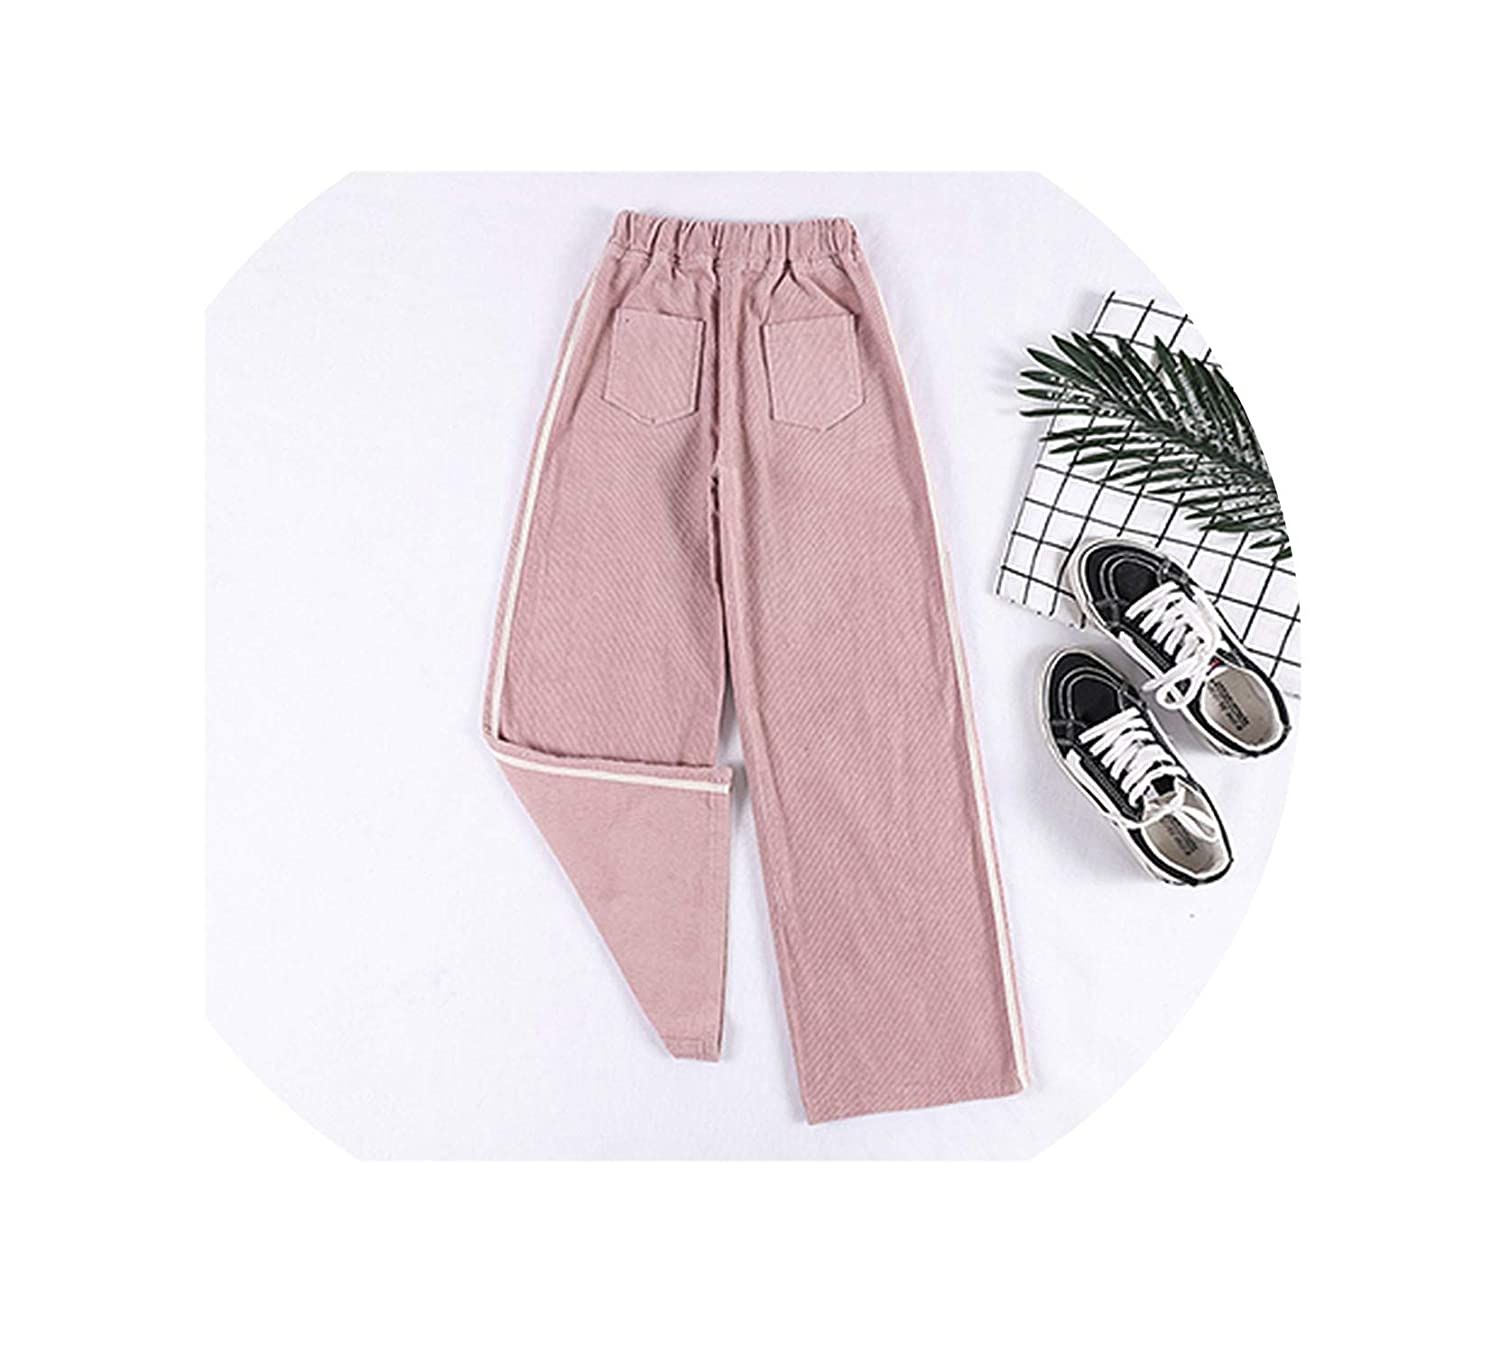 Pink I'll NEVER BE HER Autumn Winter Women's Pants Corduroy Wide Leg Pants Thick Warm Loose 2018 Female Casual Corduroy Trousers